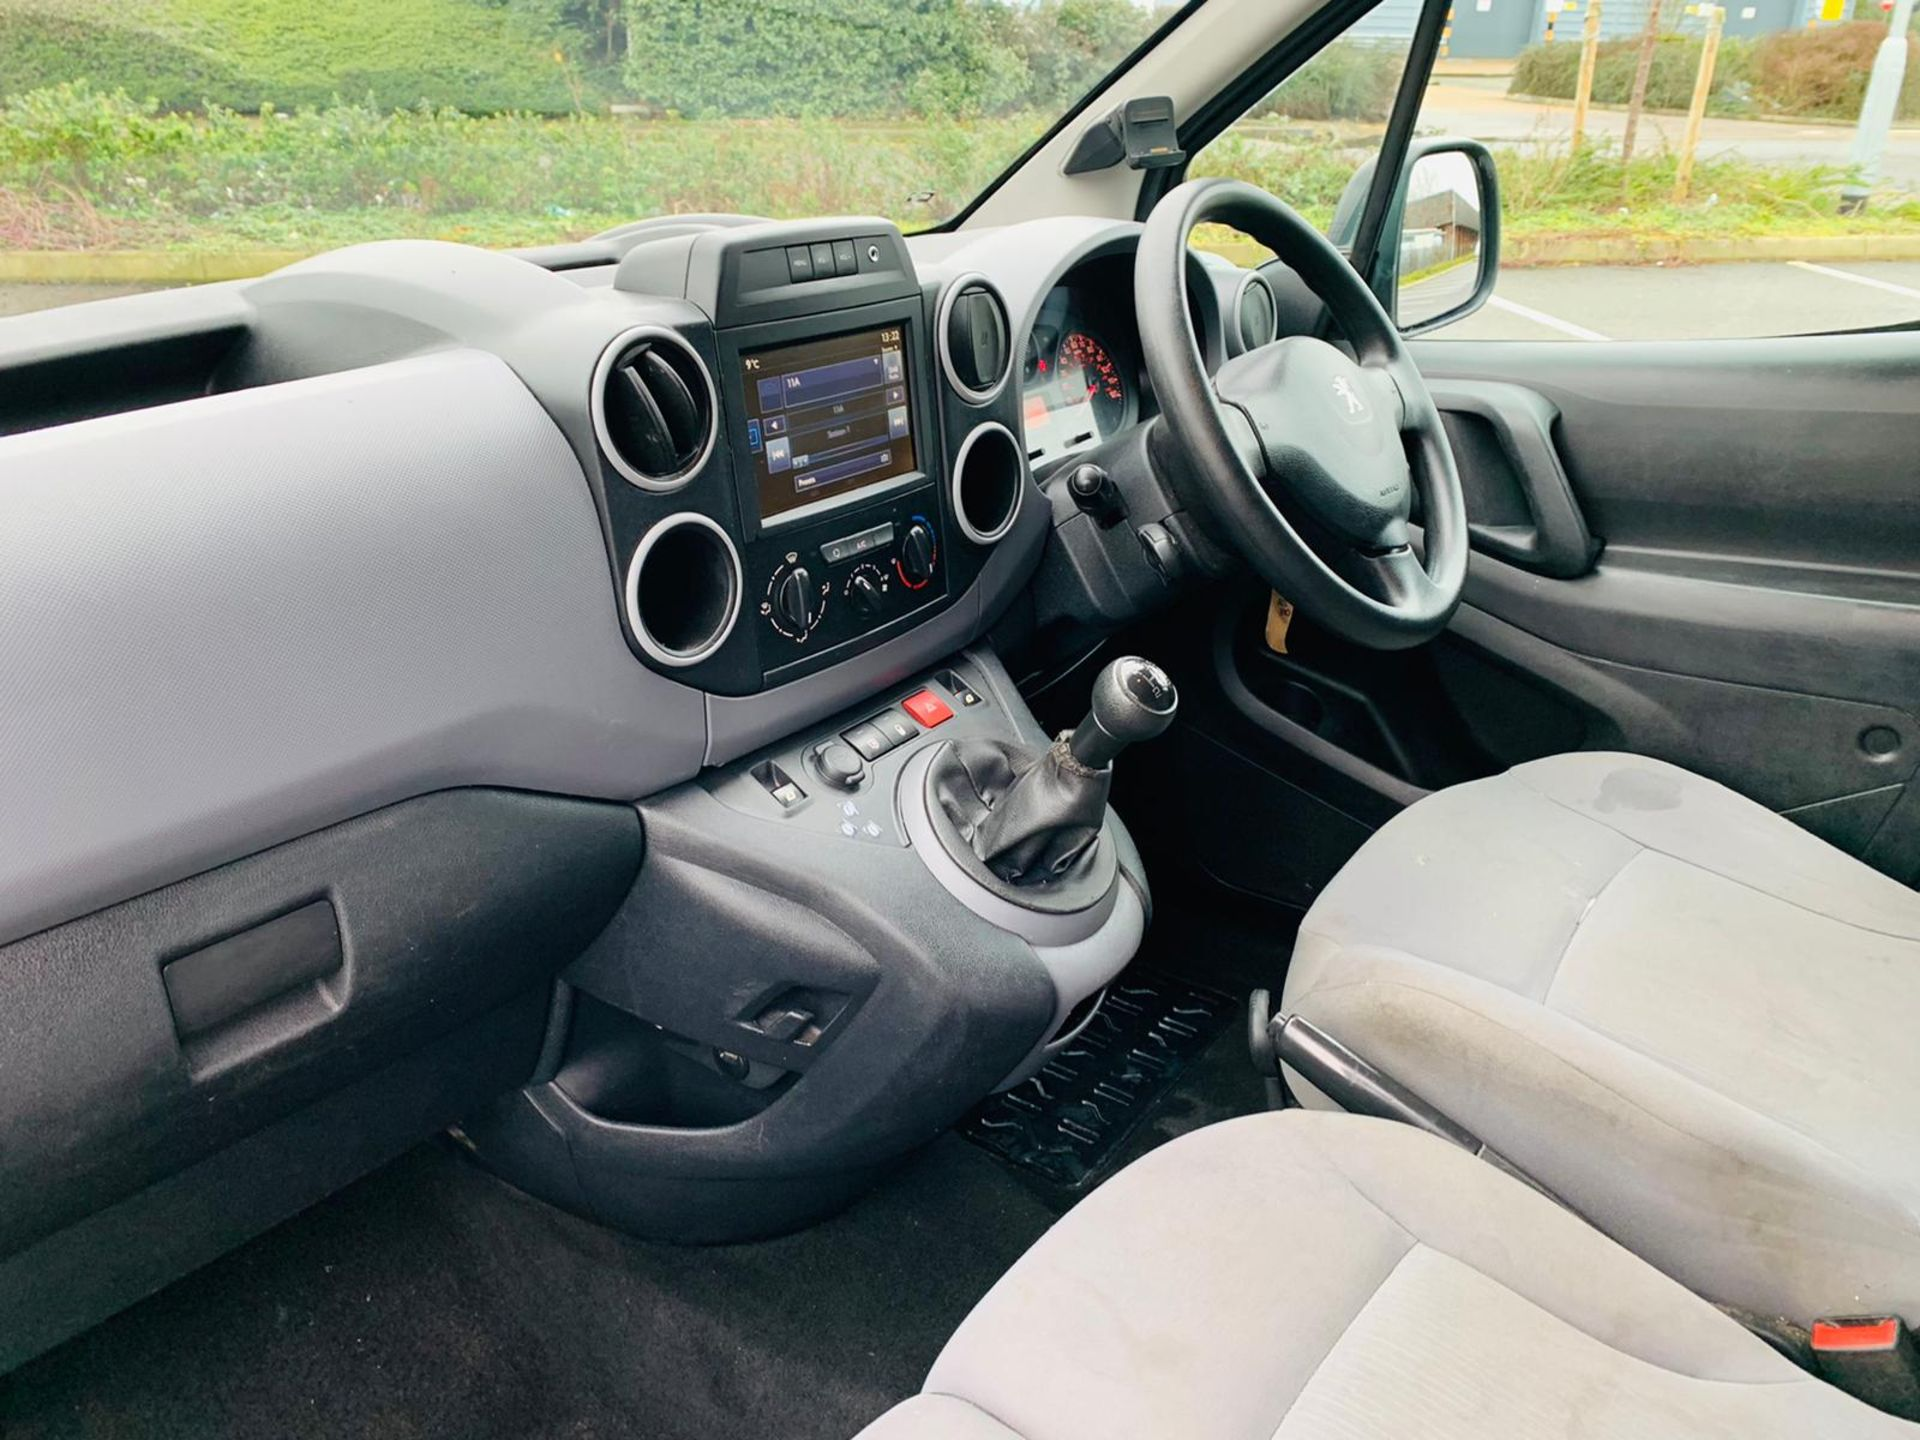 (RESERVE MET) Peugeot Partner 1.6 HDI Professional - 2017 Model - Air Con - Service History - Image 14 of 22